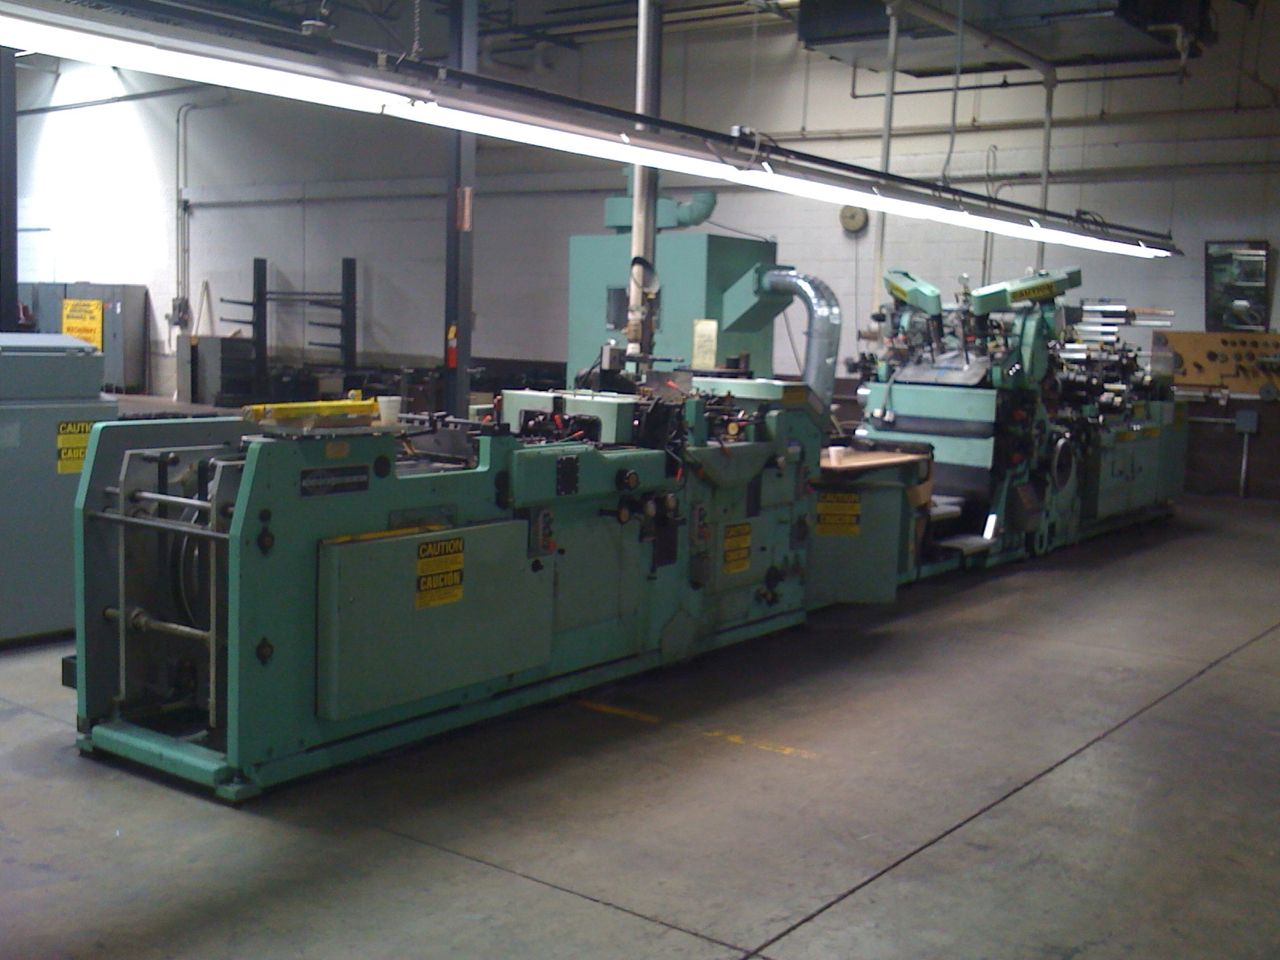 1980 FL SMITHE RA800 blank fed envelope making machine with window unit and 2/1 print